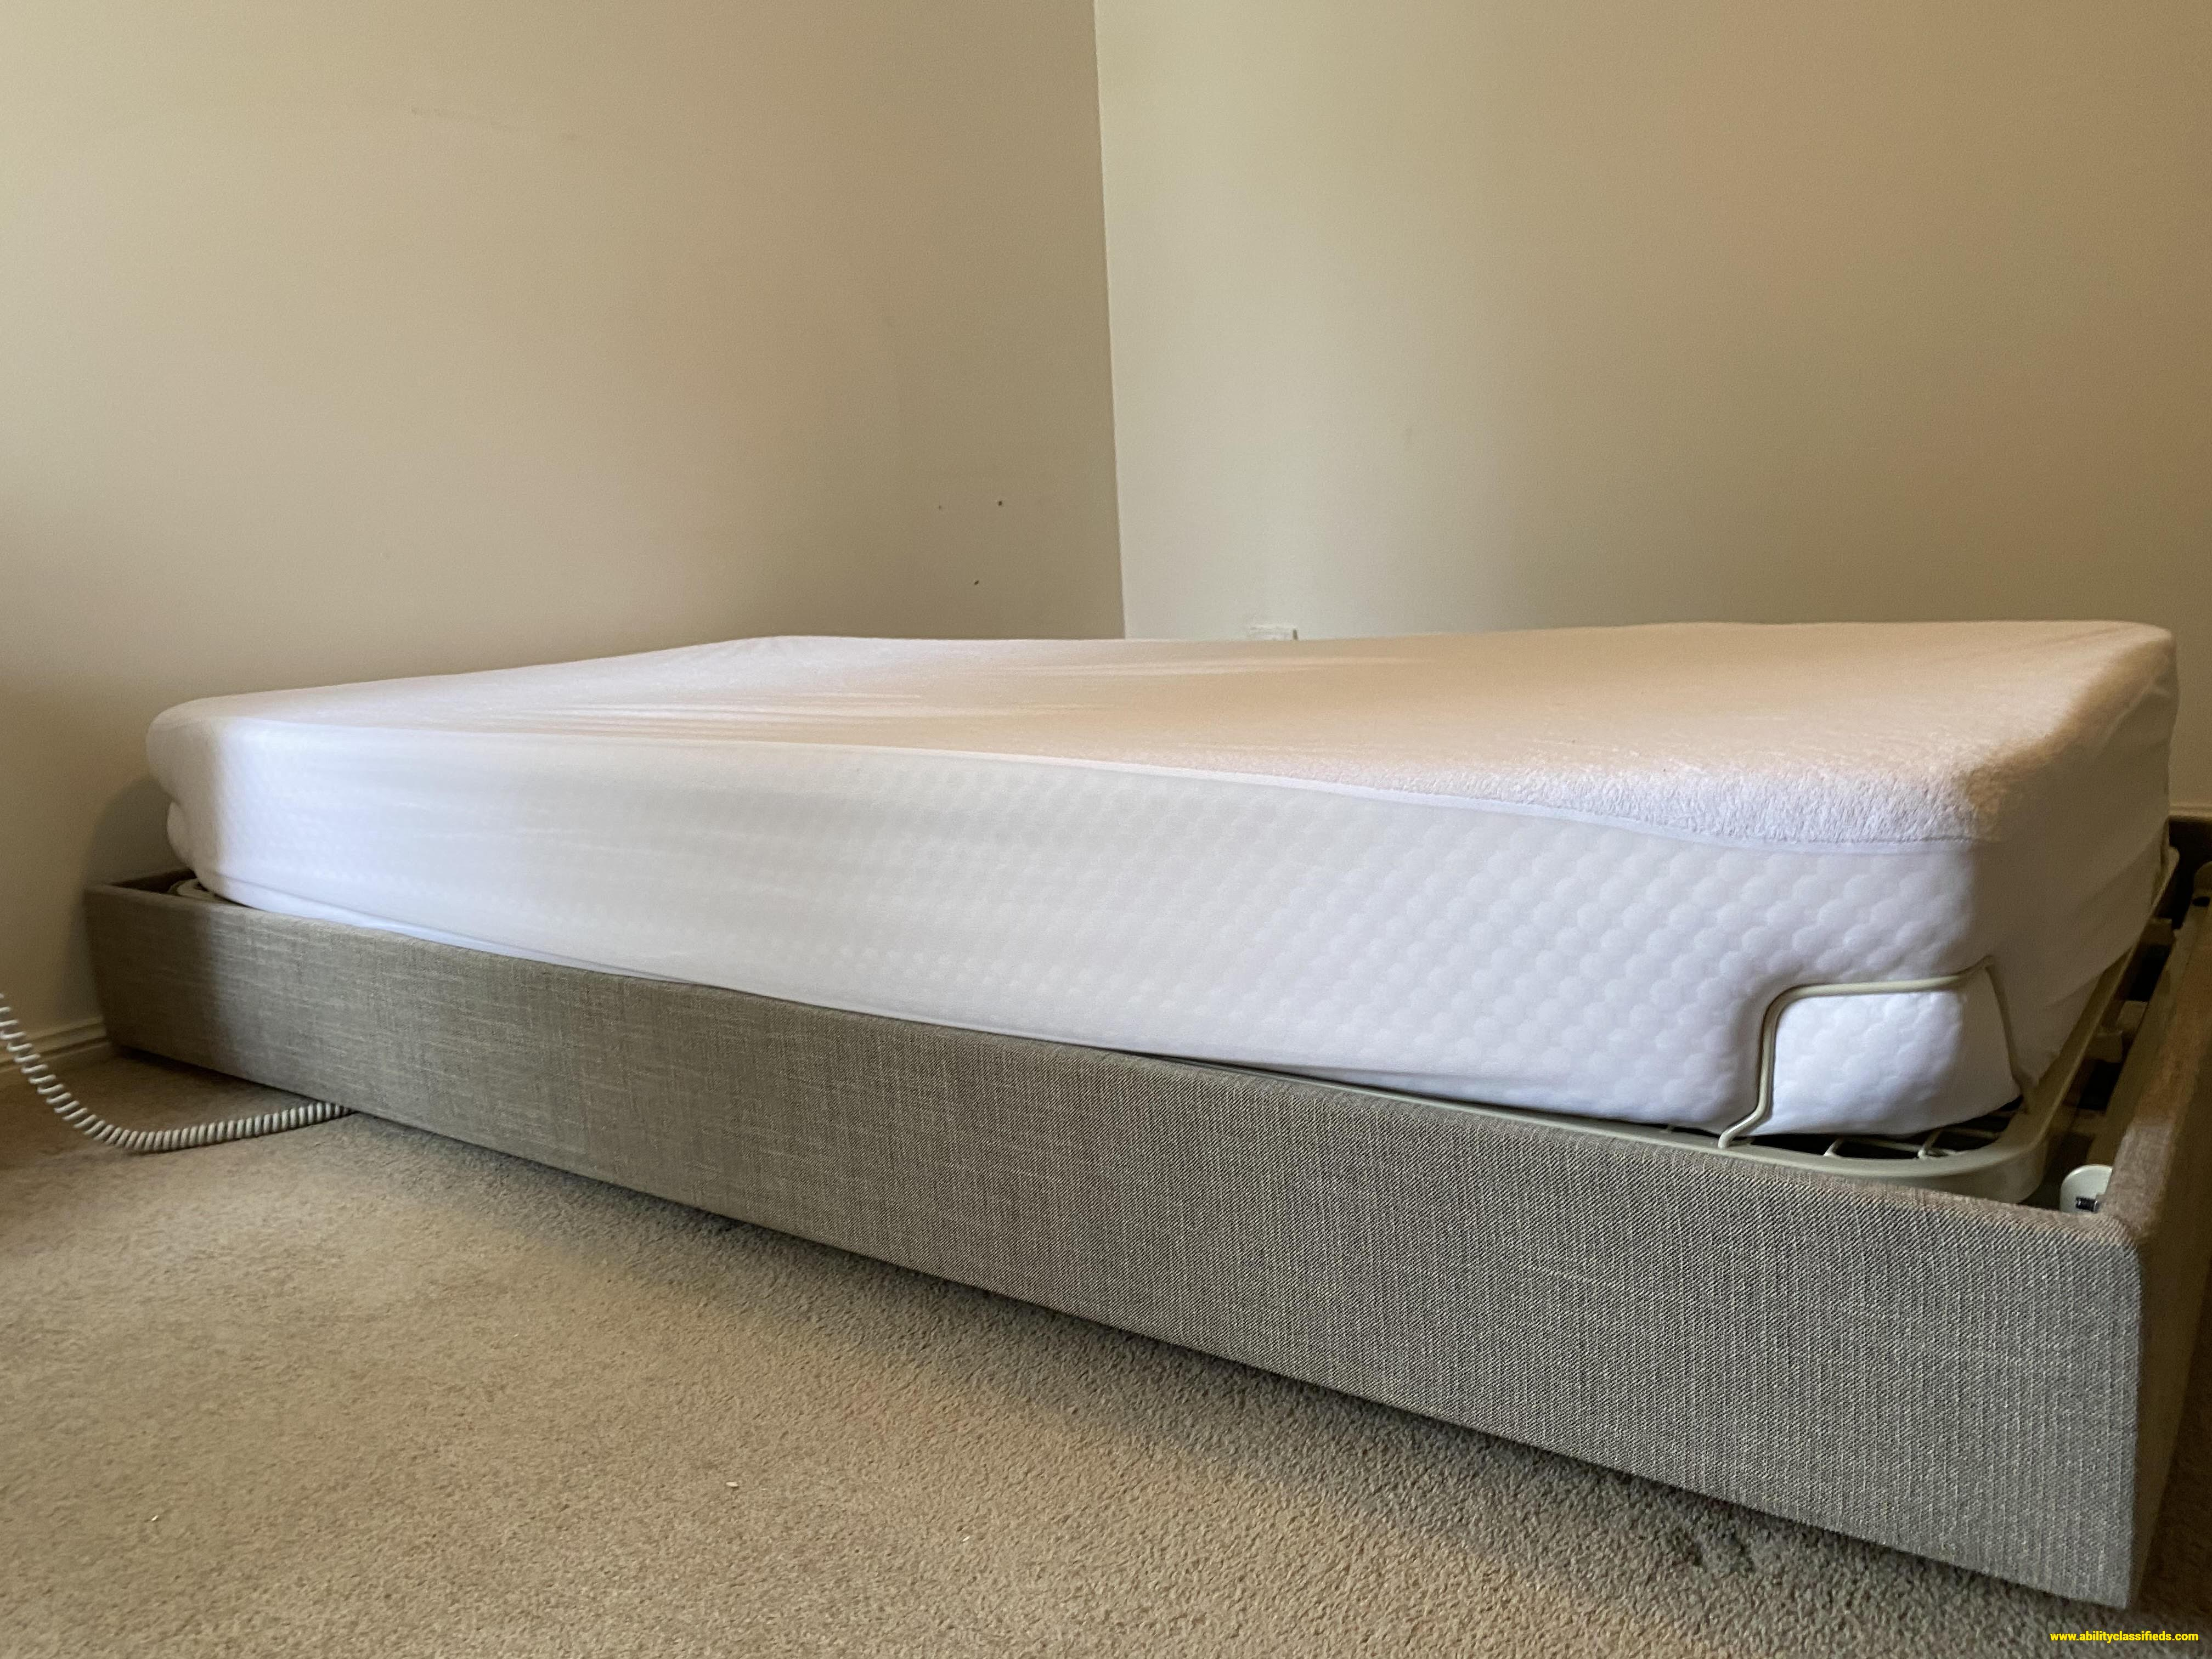 I-Care IC333 Adjustable Bed